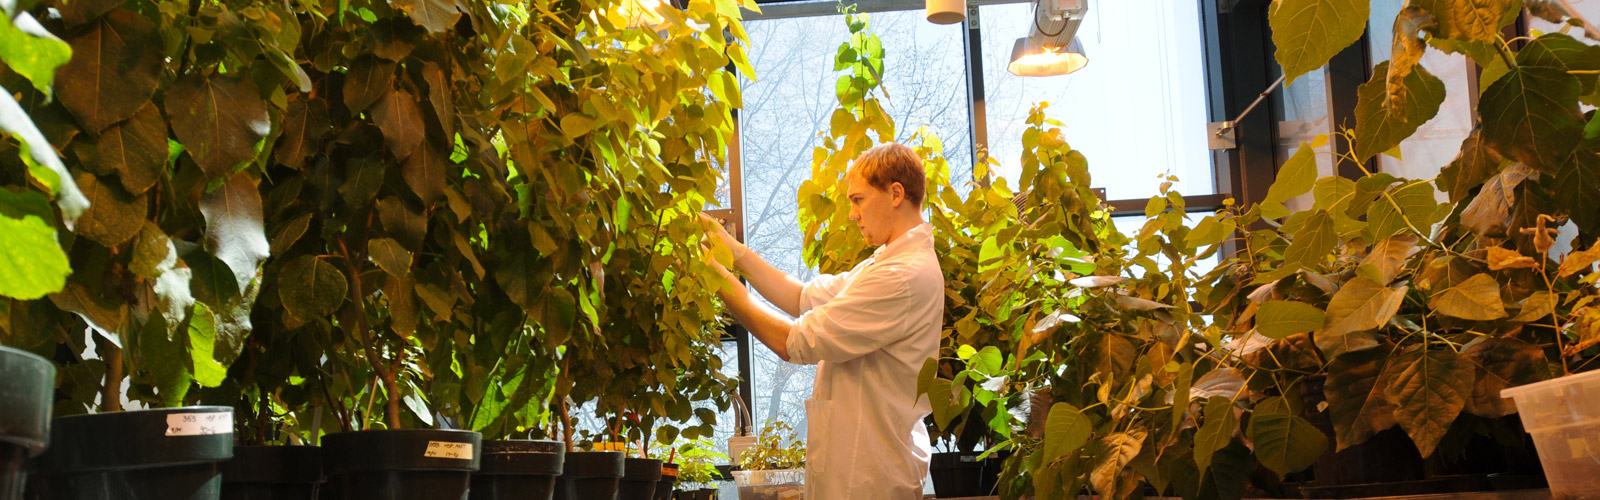 Student tending to rows of plants